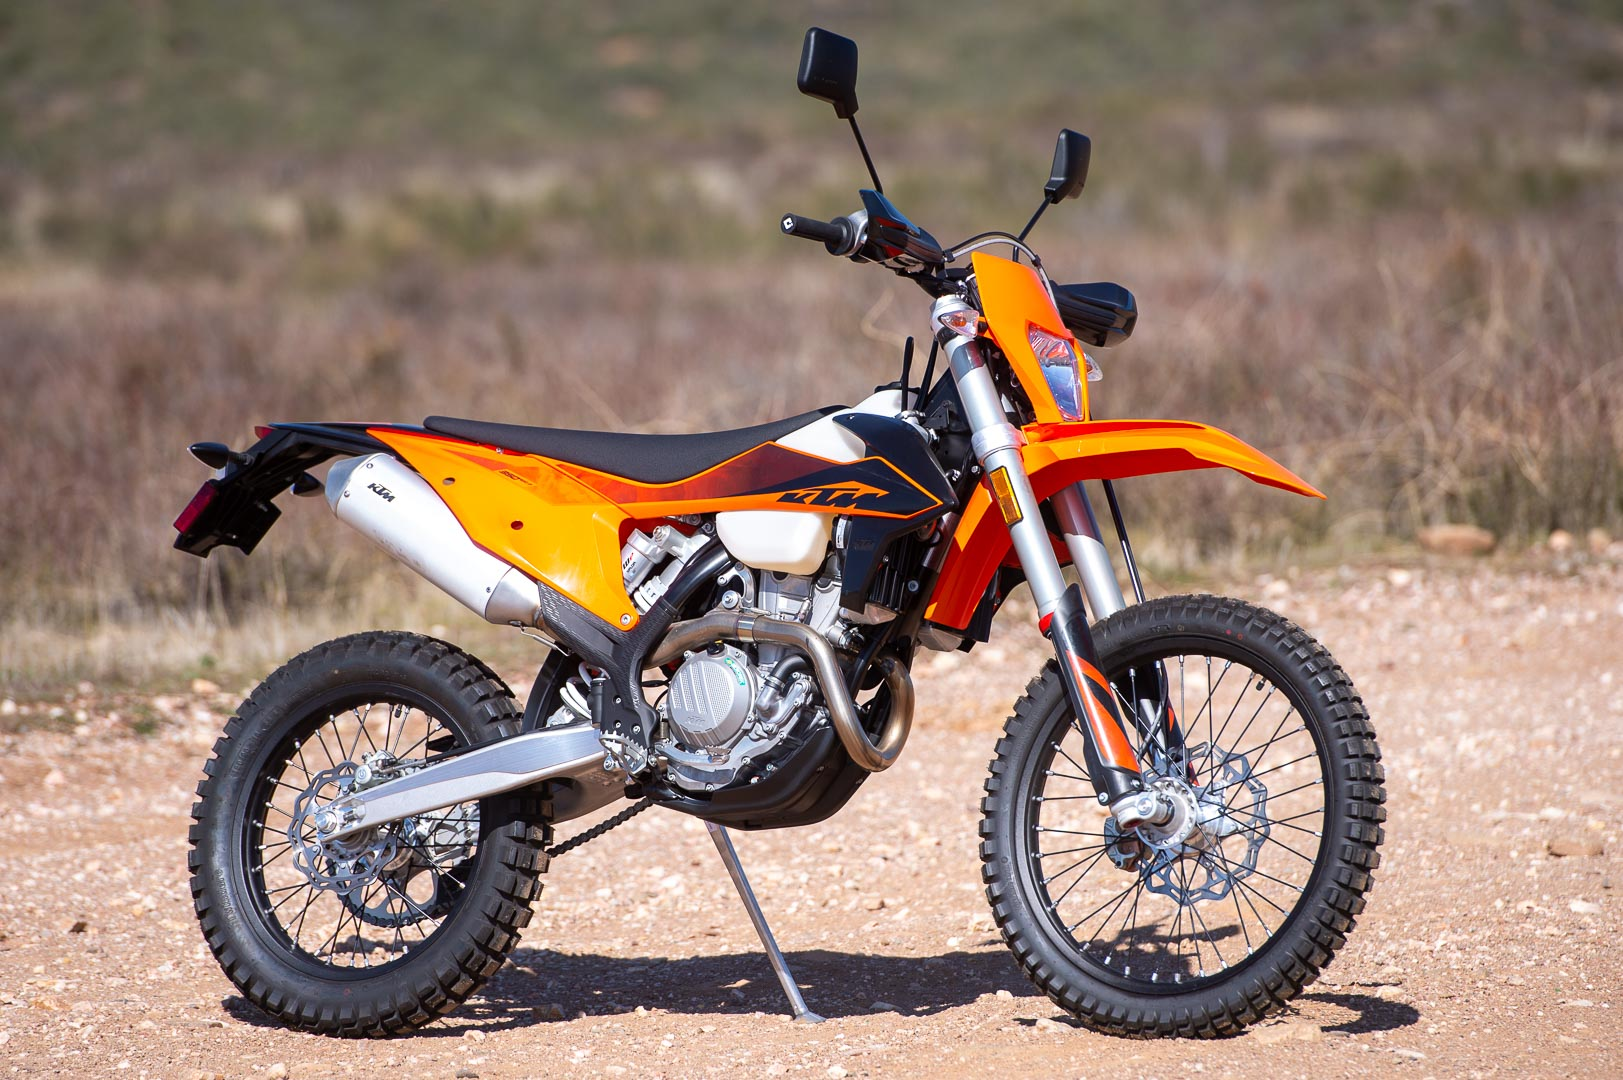 2020 KTM 350 EXC-F Review - MSRP